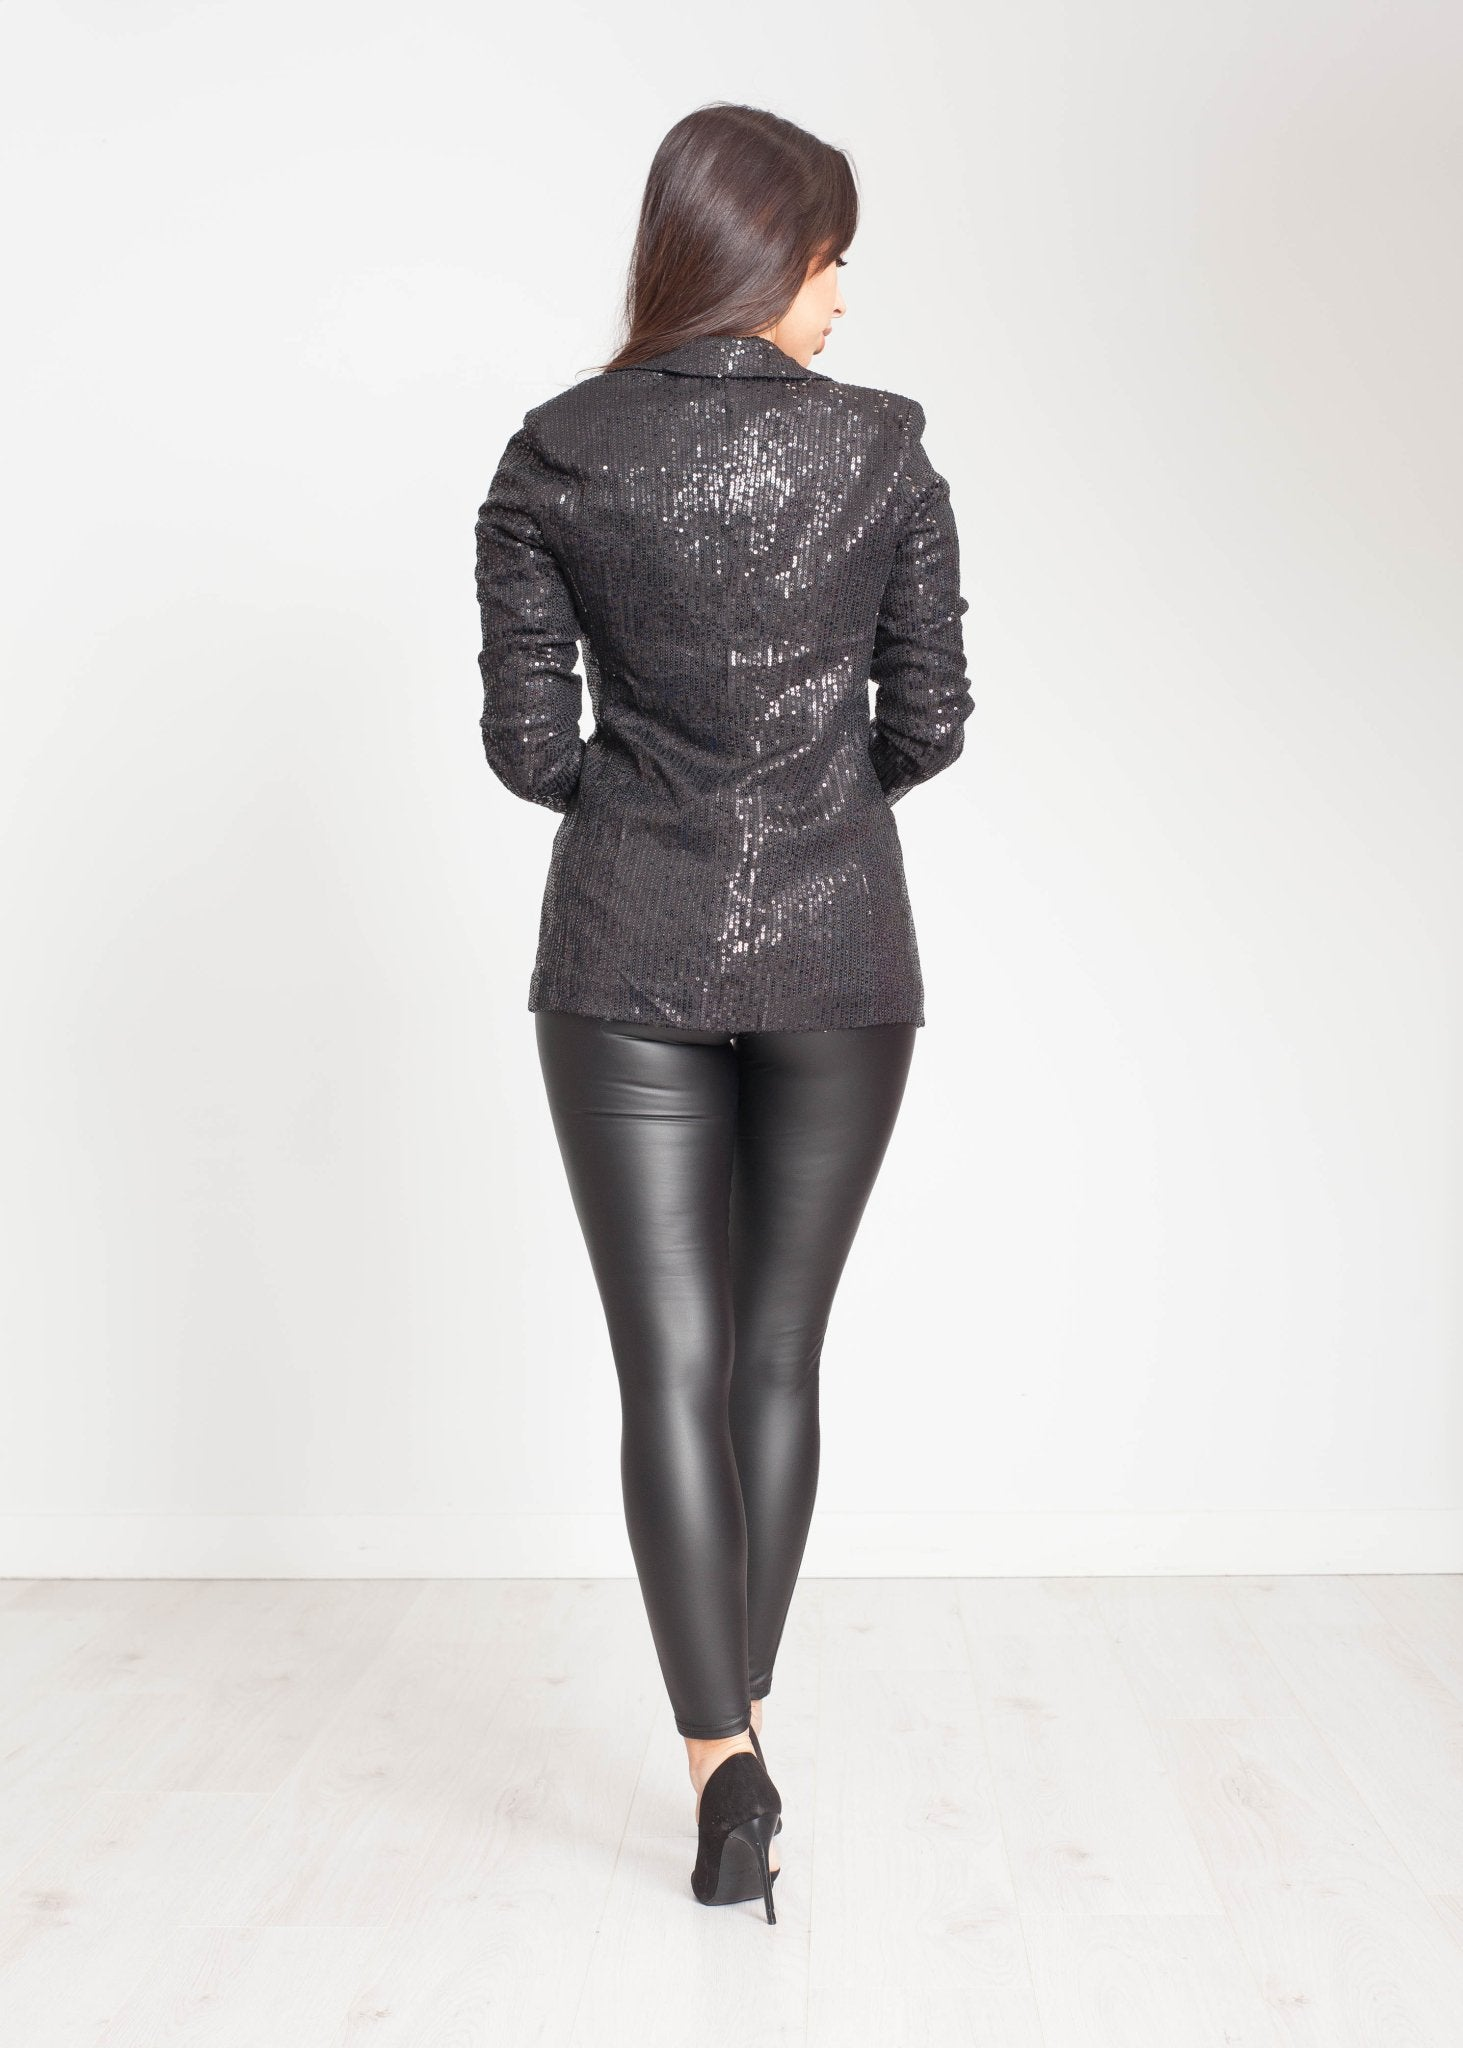 Priya Sequin Jacket In Black - The Walk in Wardrobe